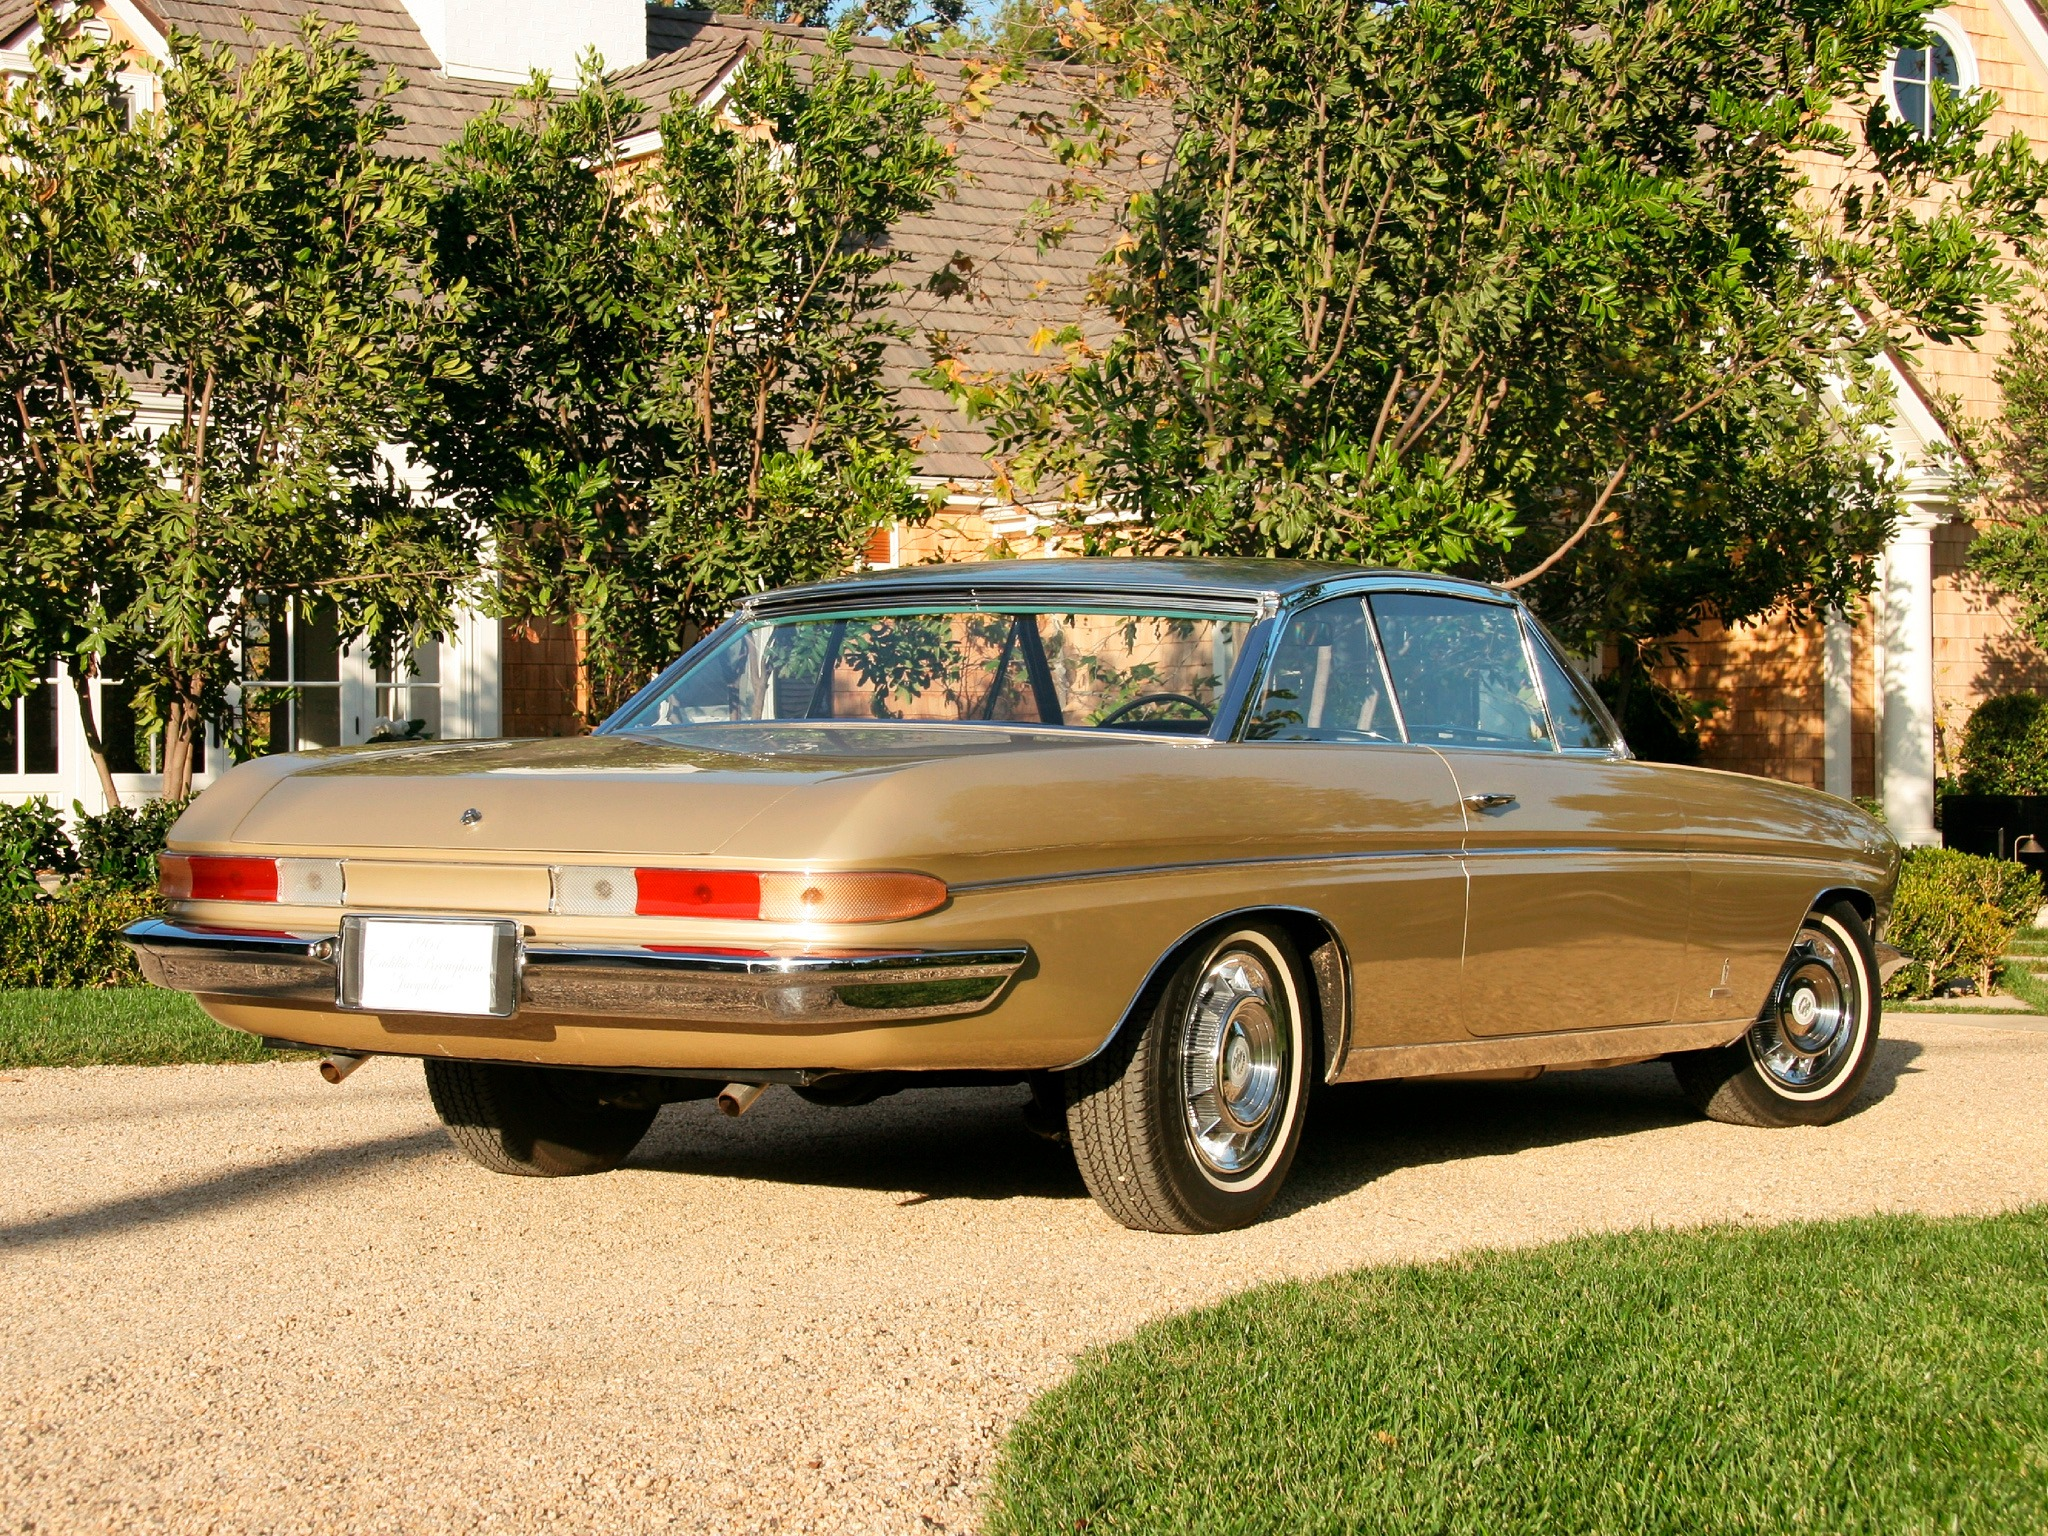 Cadillac Dealer Near Me >> Cadillac Jacqueline Brougham Coupe (1961) - Old Concept Cars